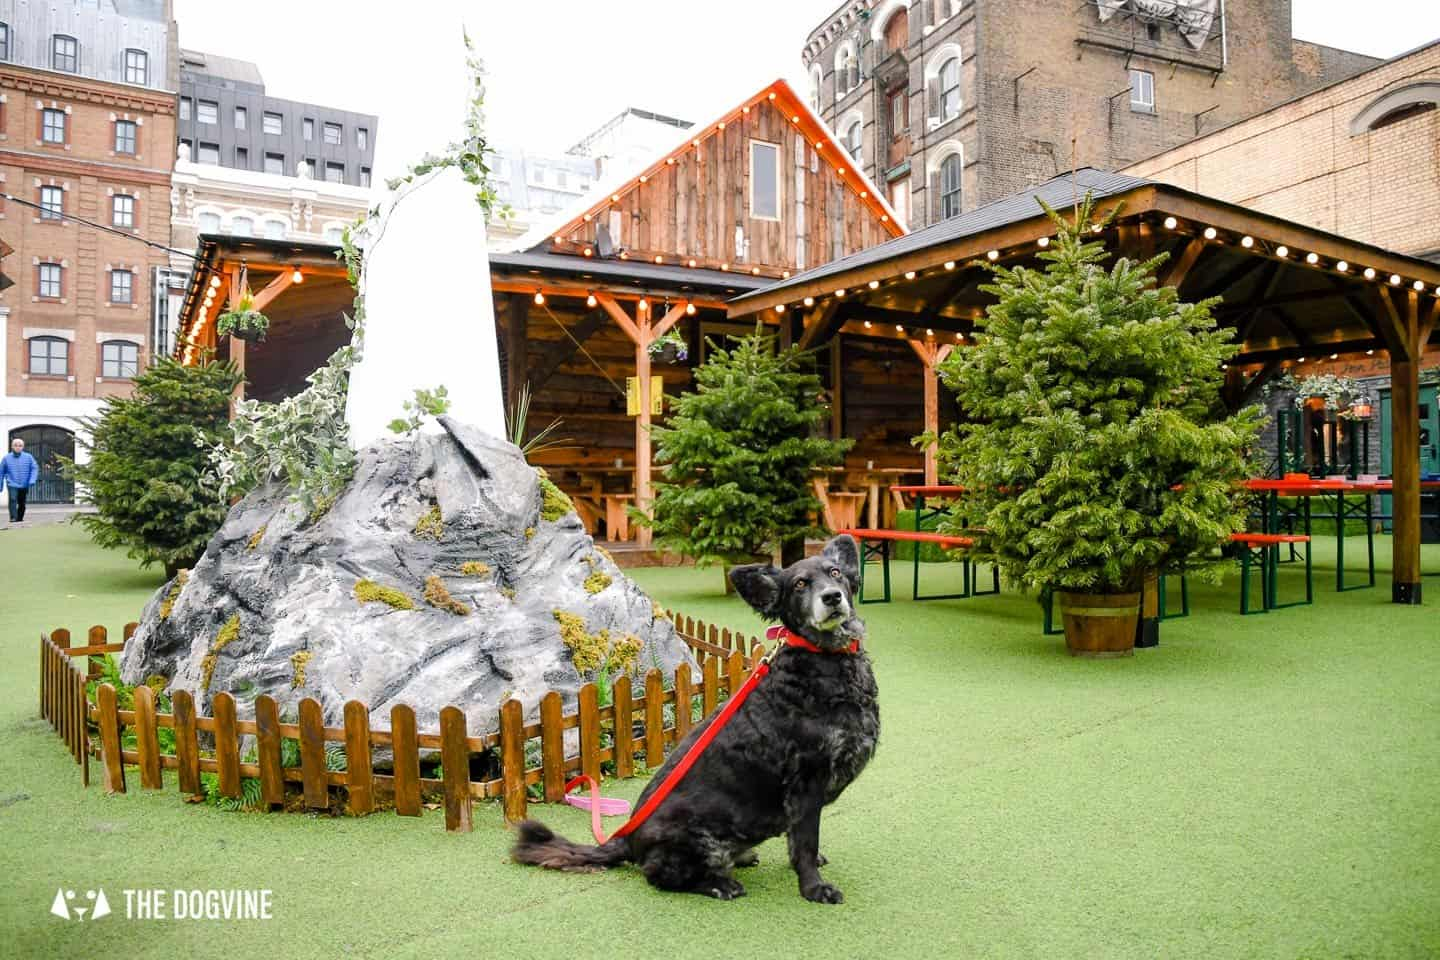 Best Dog-friendly Street Food Markets and Halls in London 9